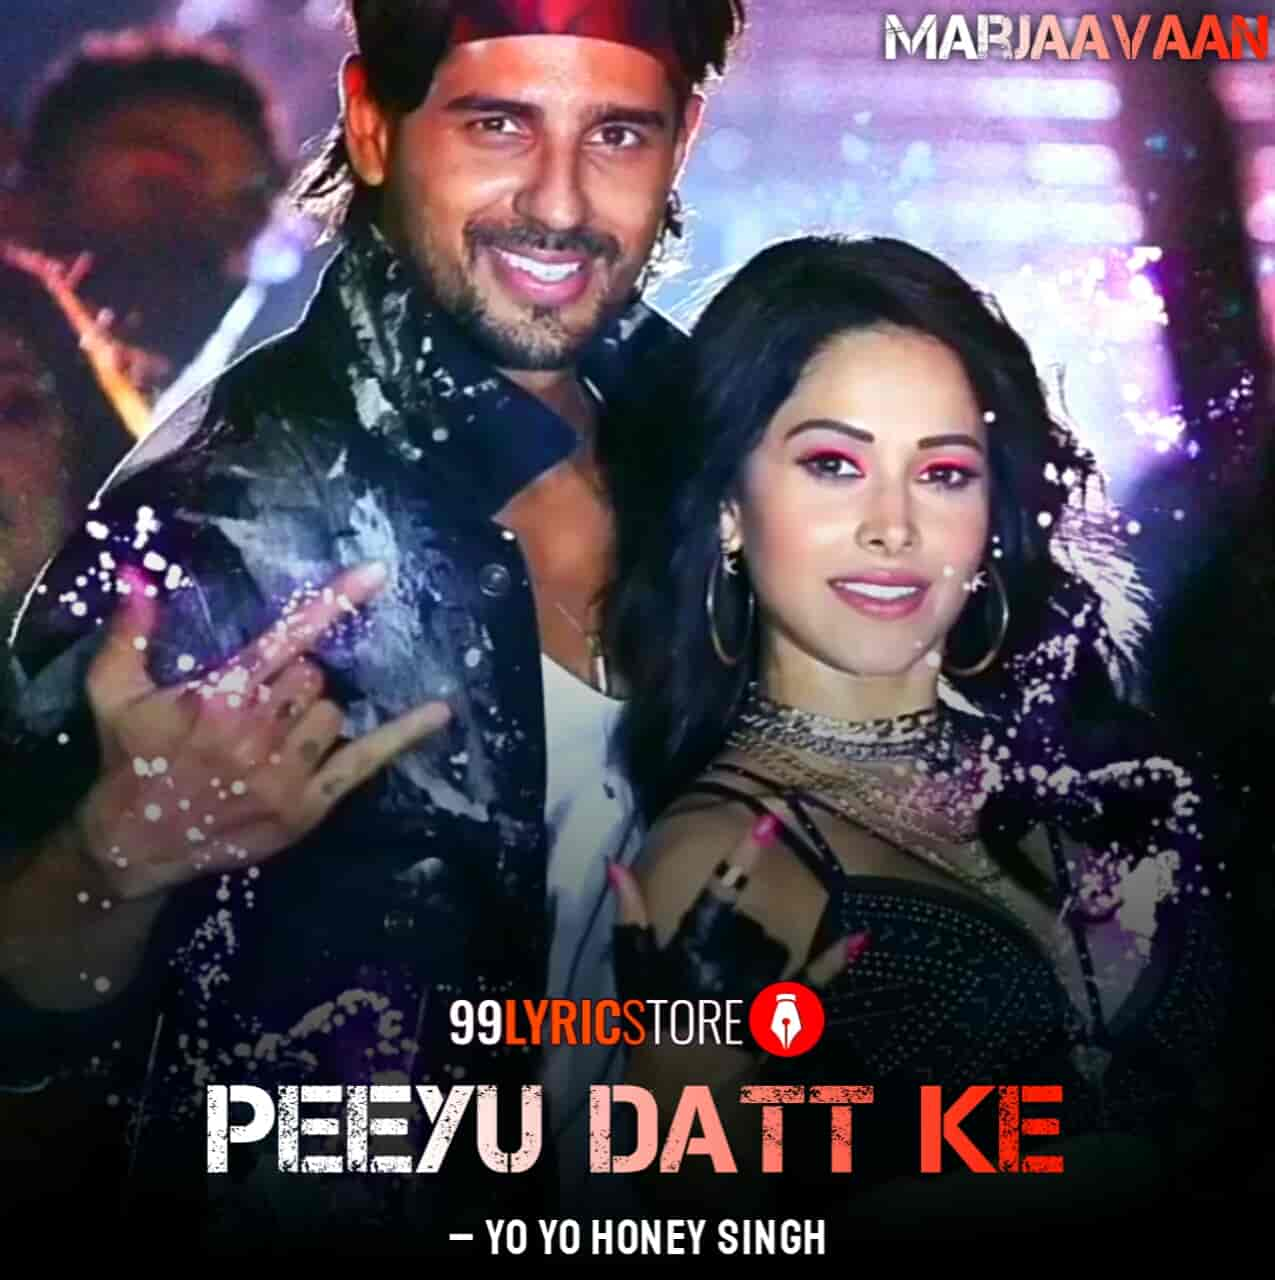 Peeyu Datt Ke Song Images From Movie marjaavaan